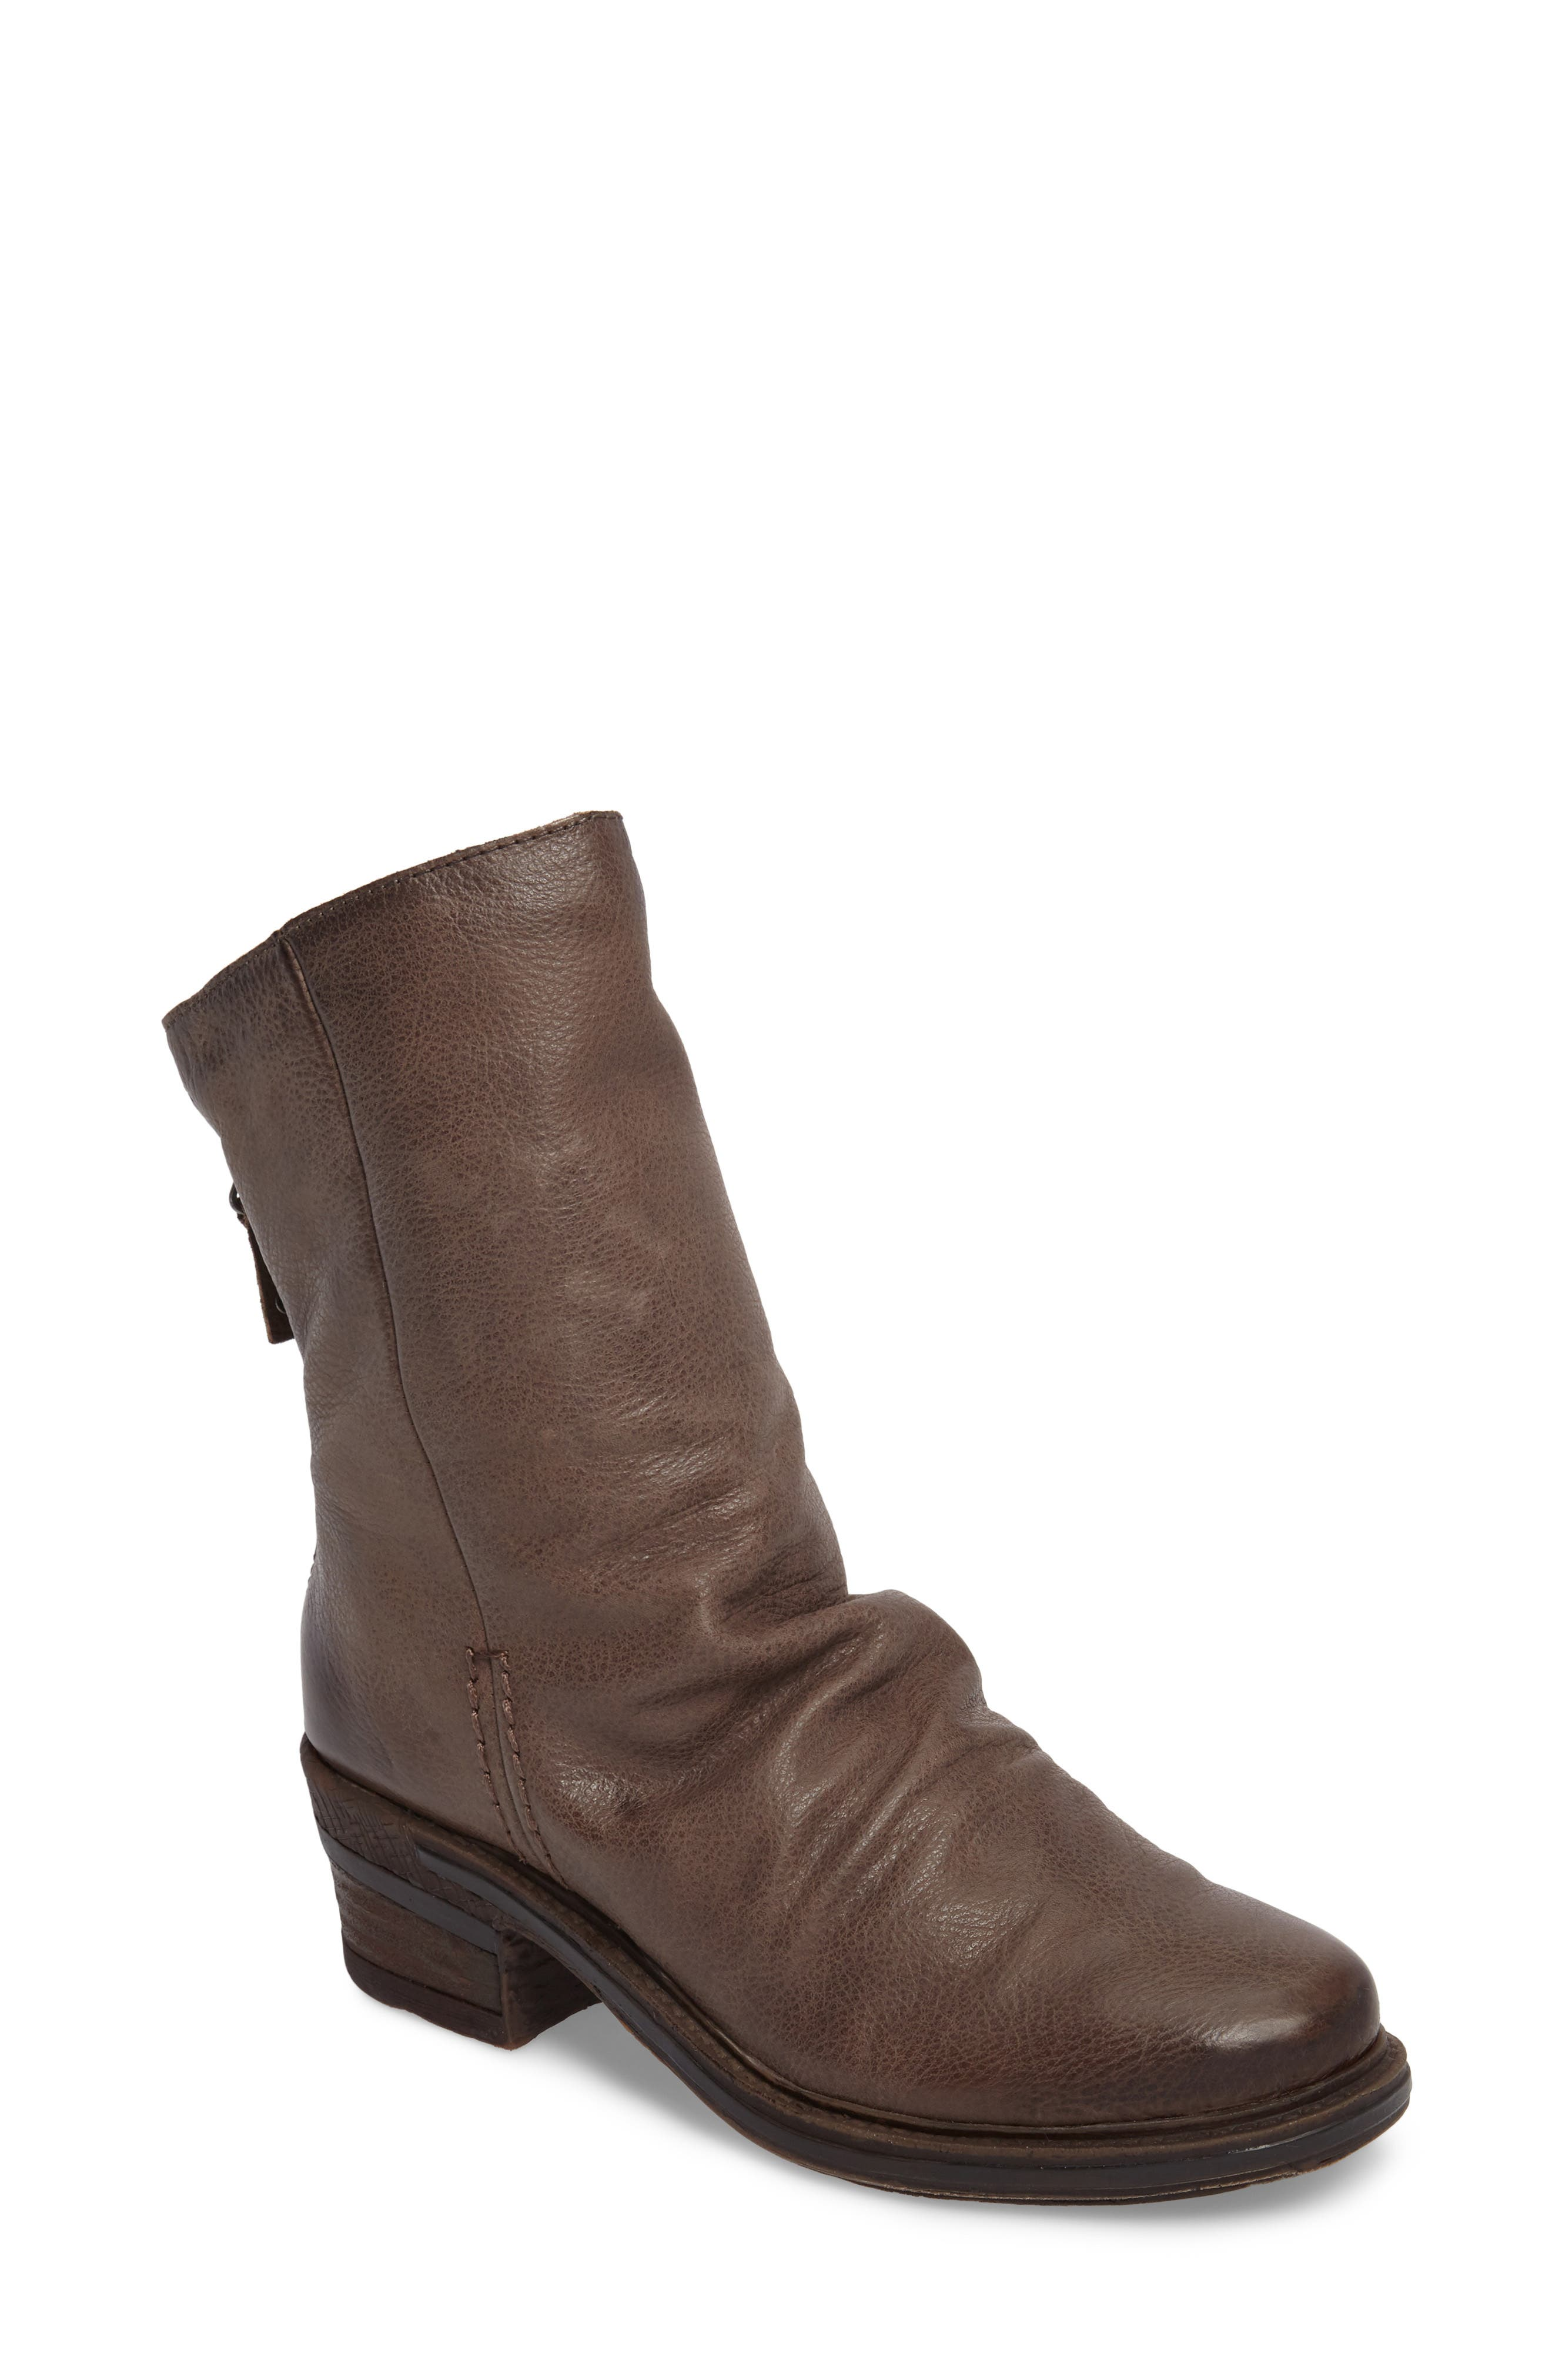 Fernweh Slouchy Bootie,                             Main thumbnail 1, color,                             200